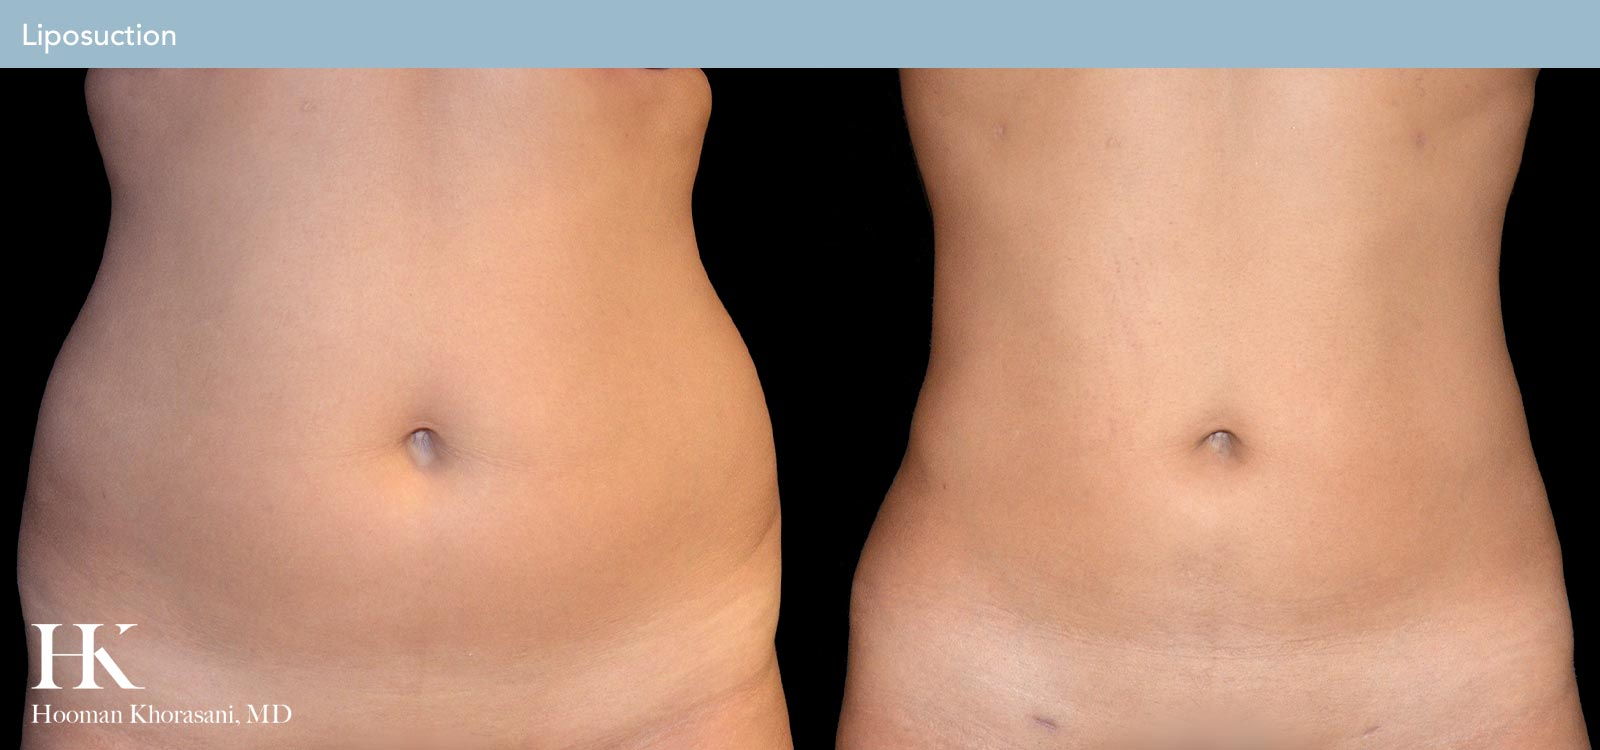 Before and After Case of Liposuction of the body